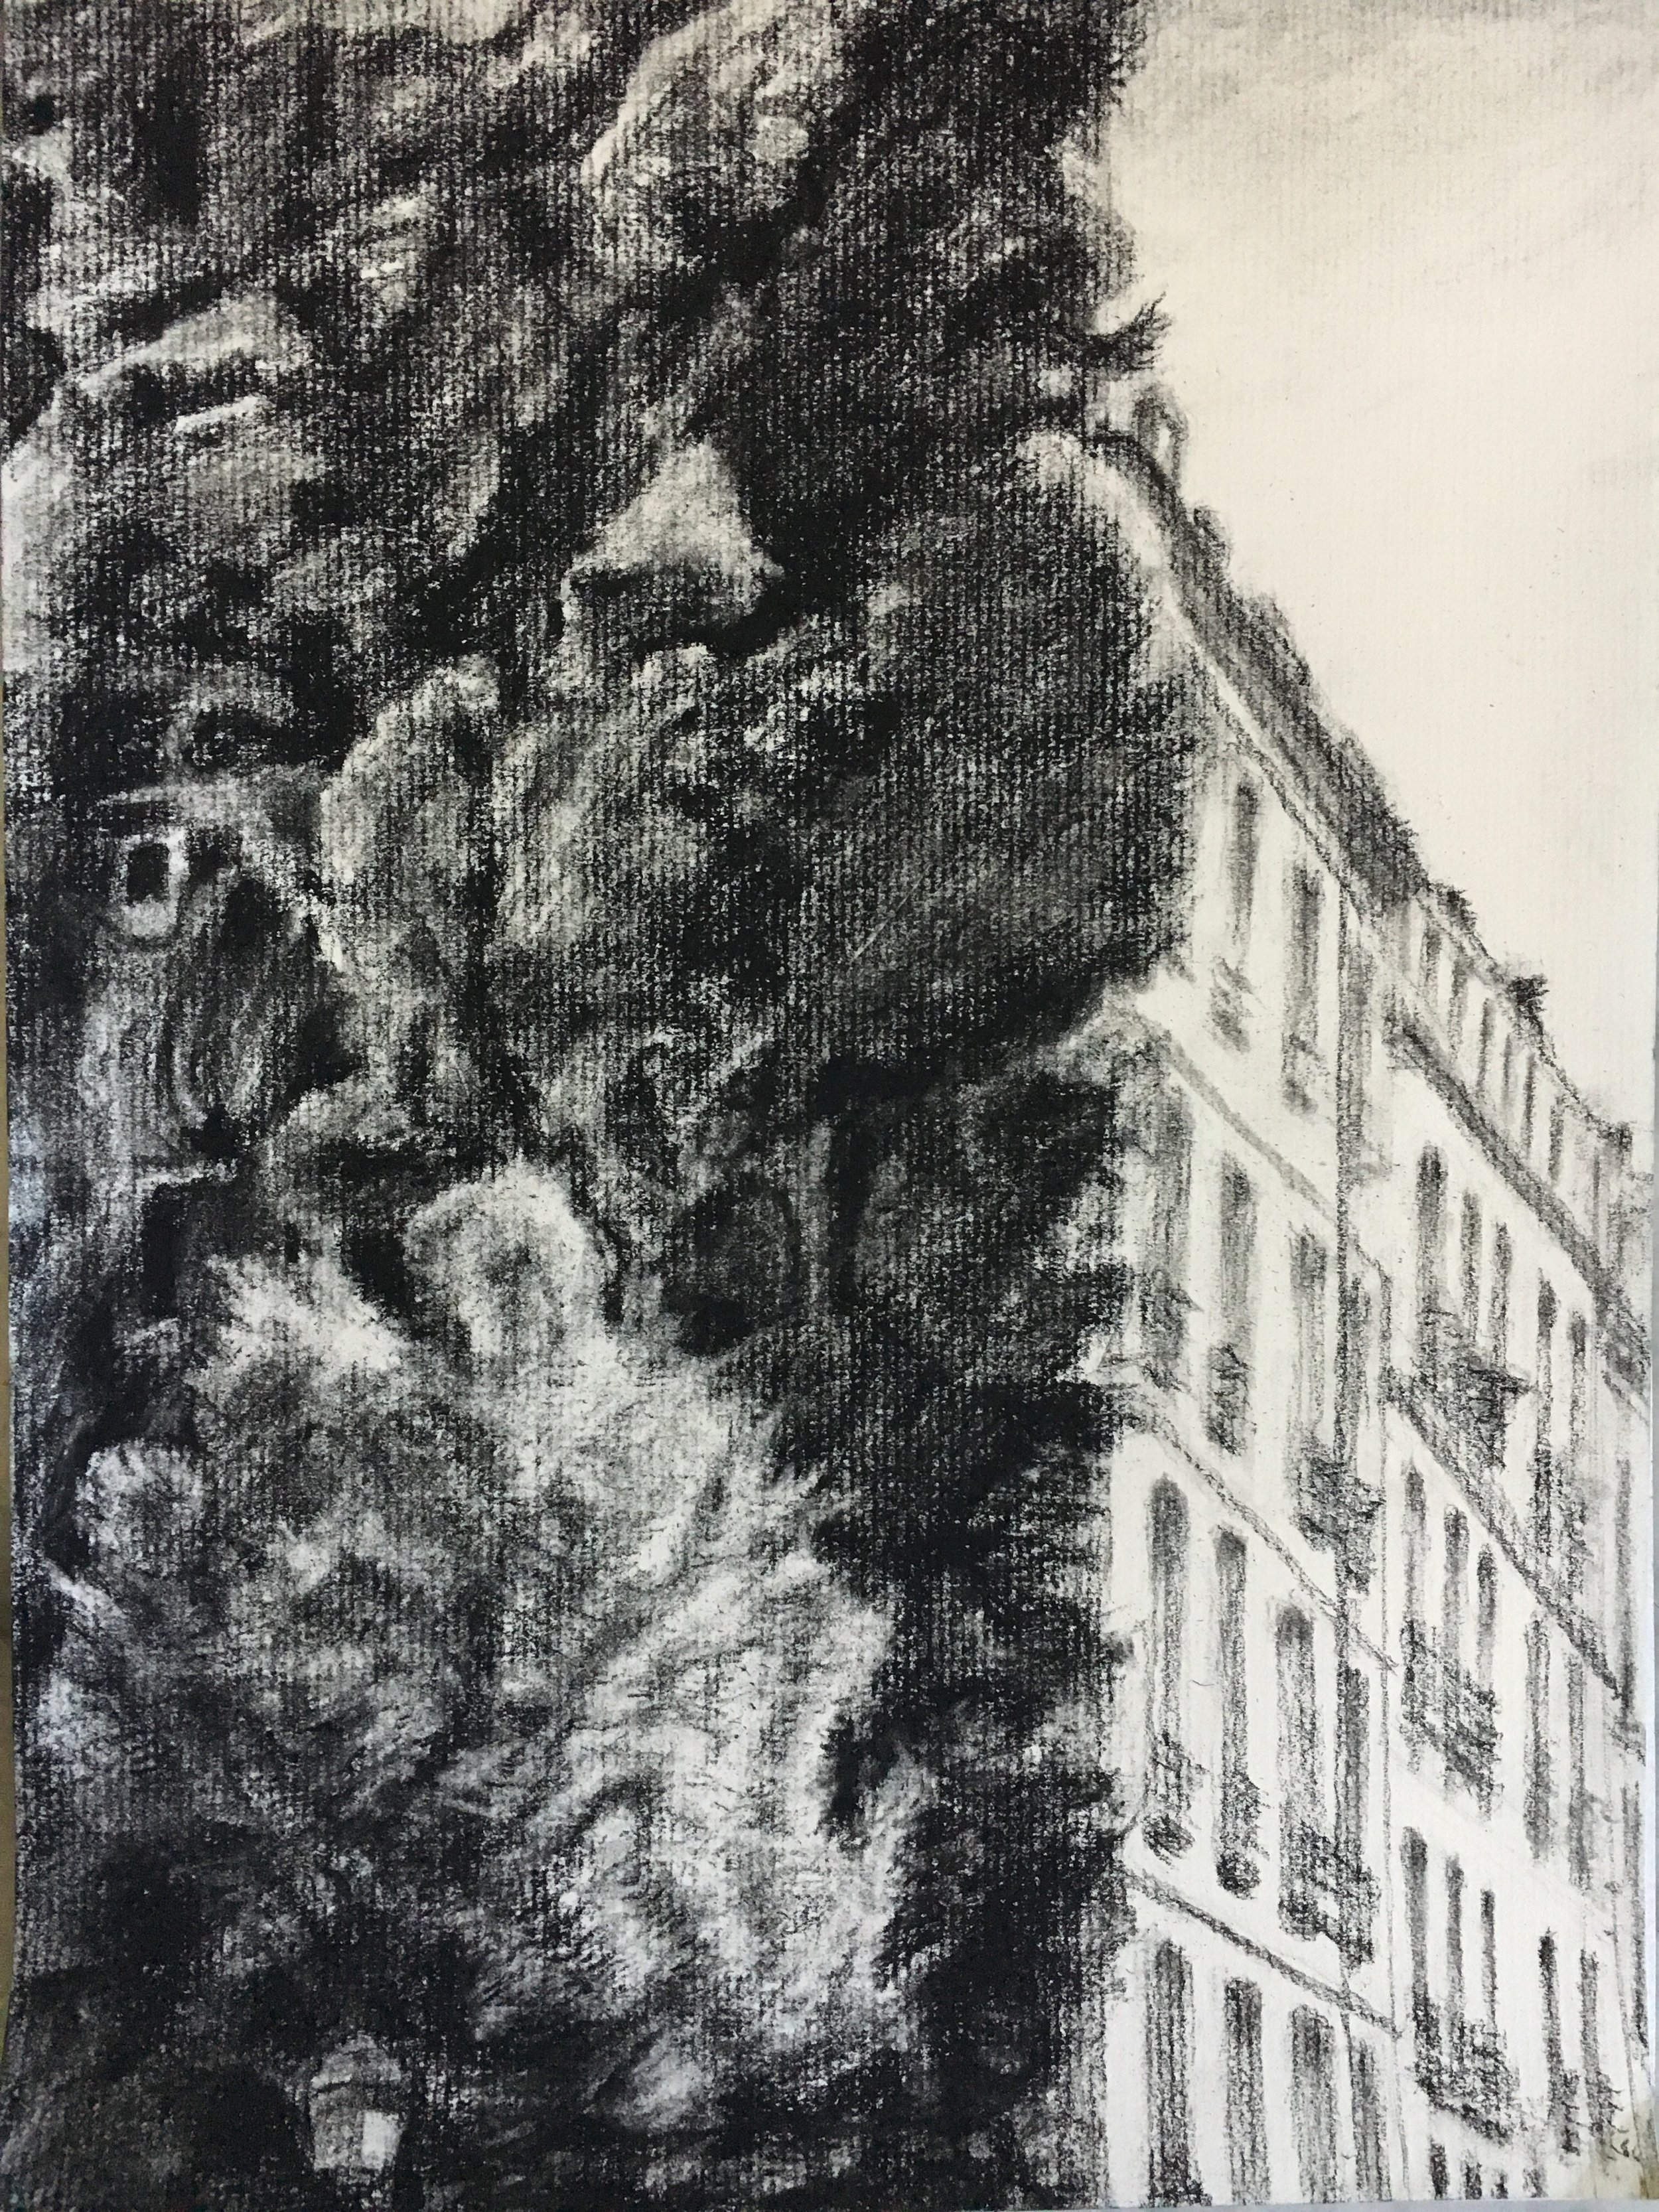 Charcoal Drawing on Vertical Garden Wall